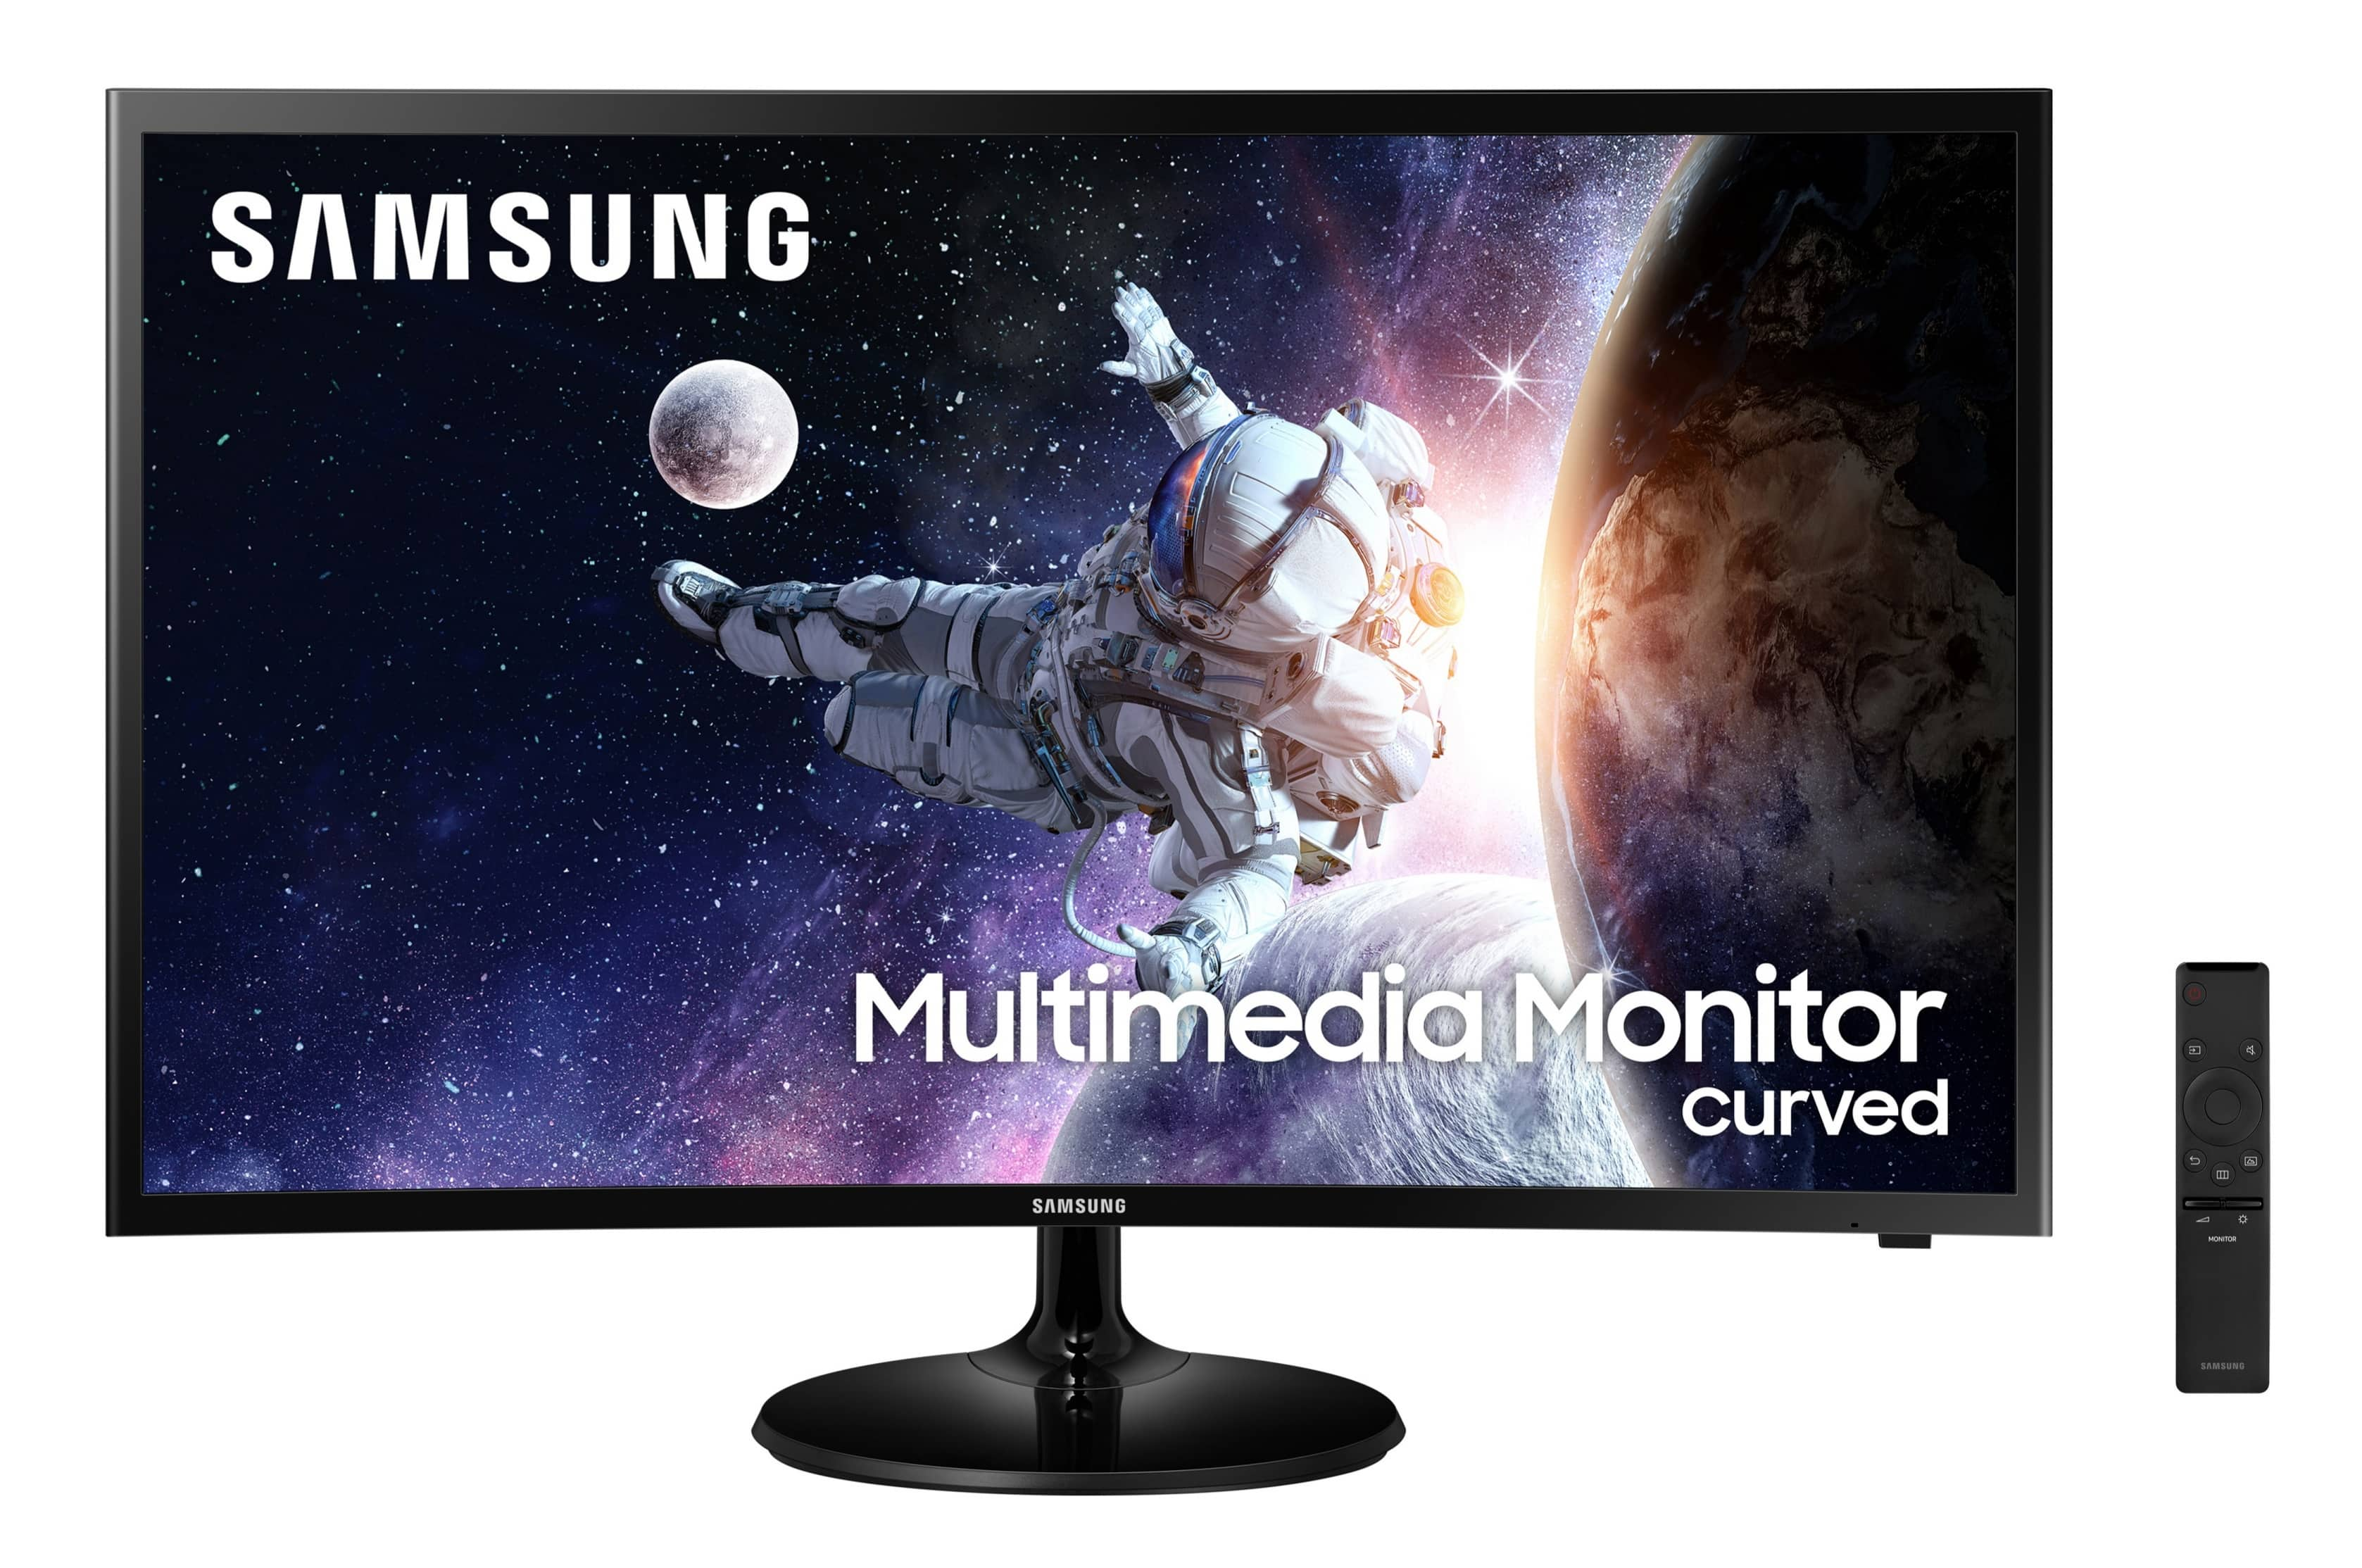 """Samsung 32"""" Curved 1080p HDMI 60hz FHD LCD Monitor $150 + Free Shipping"""